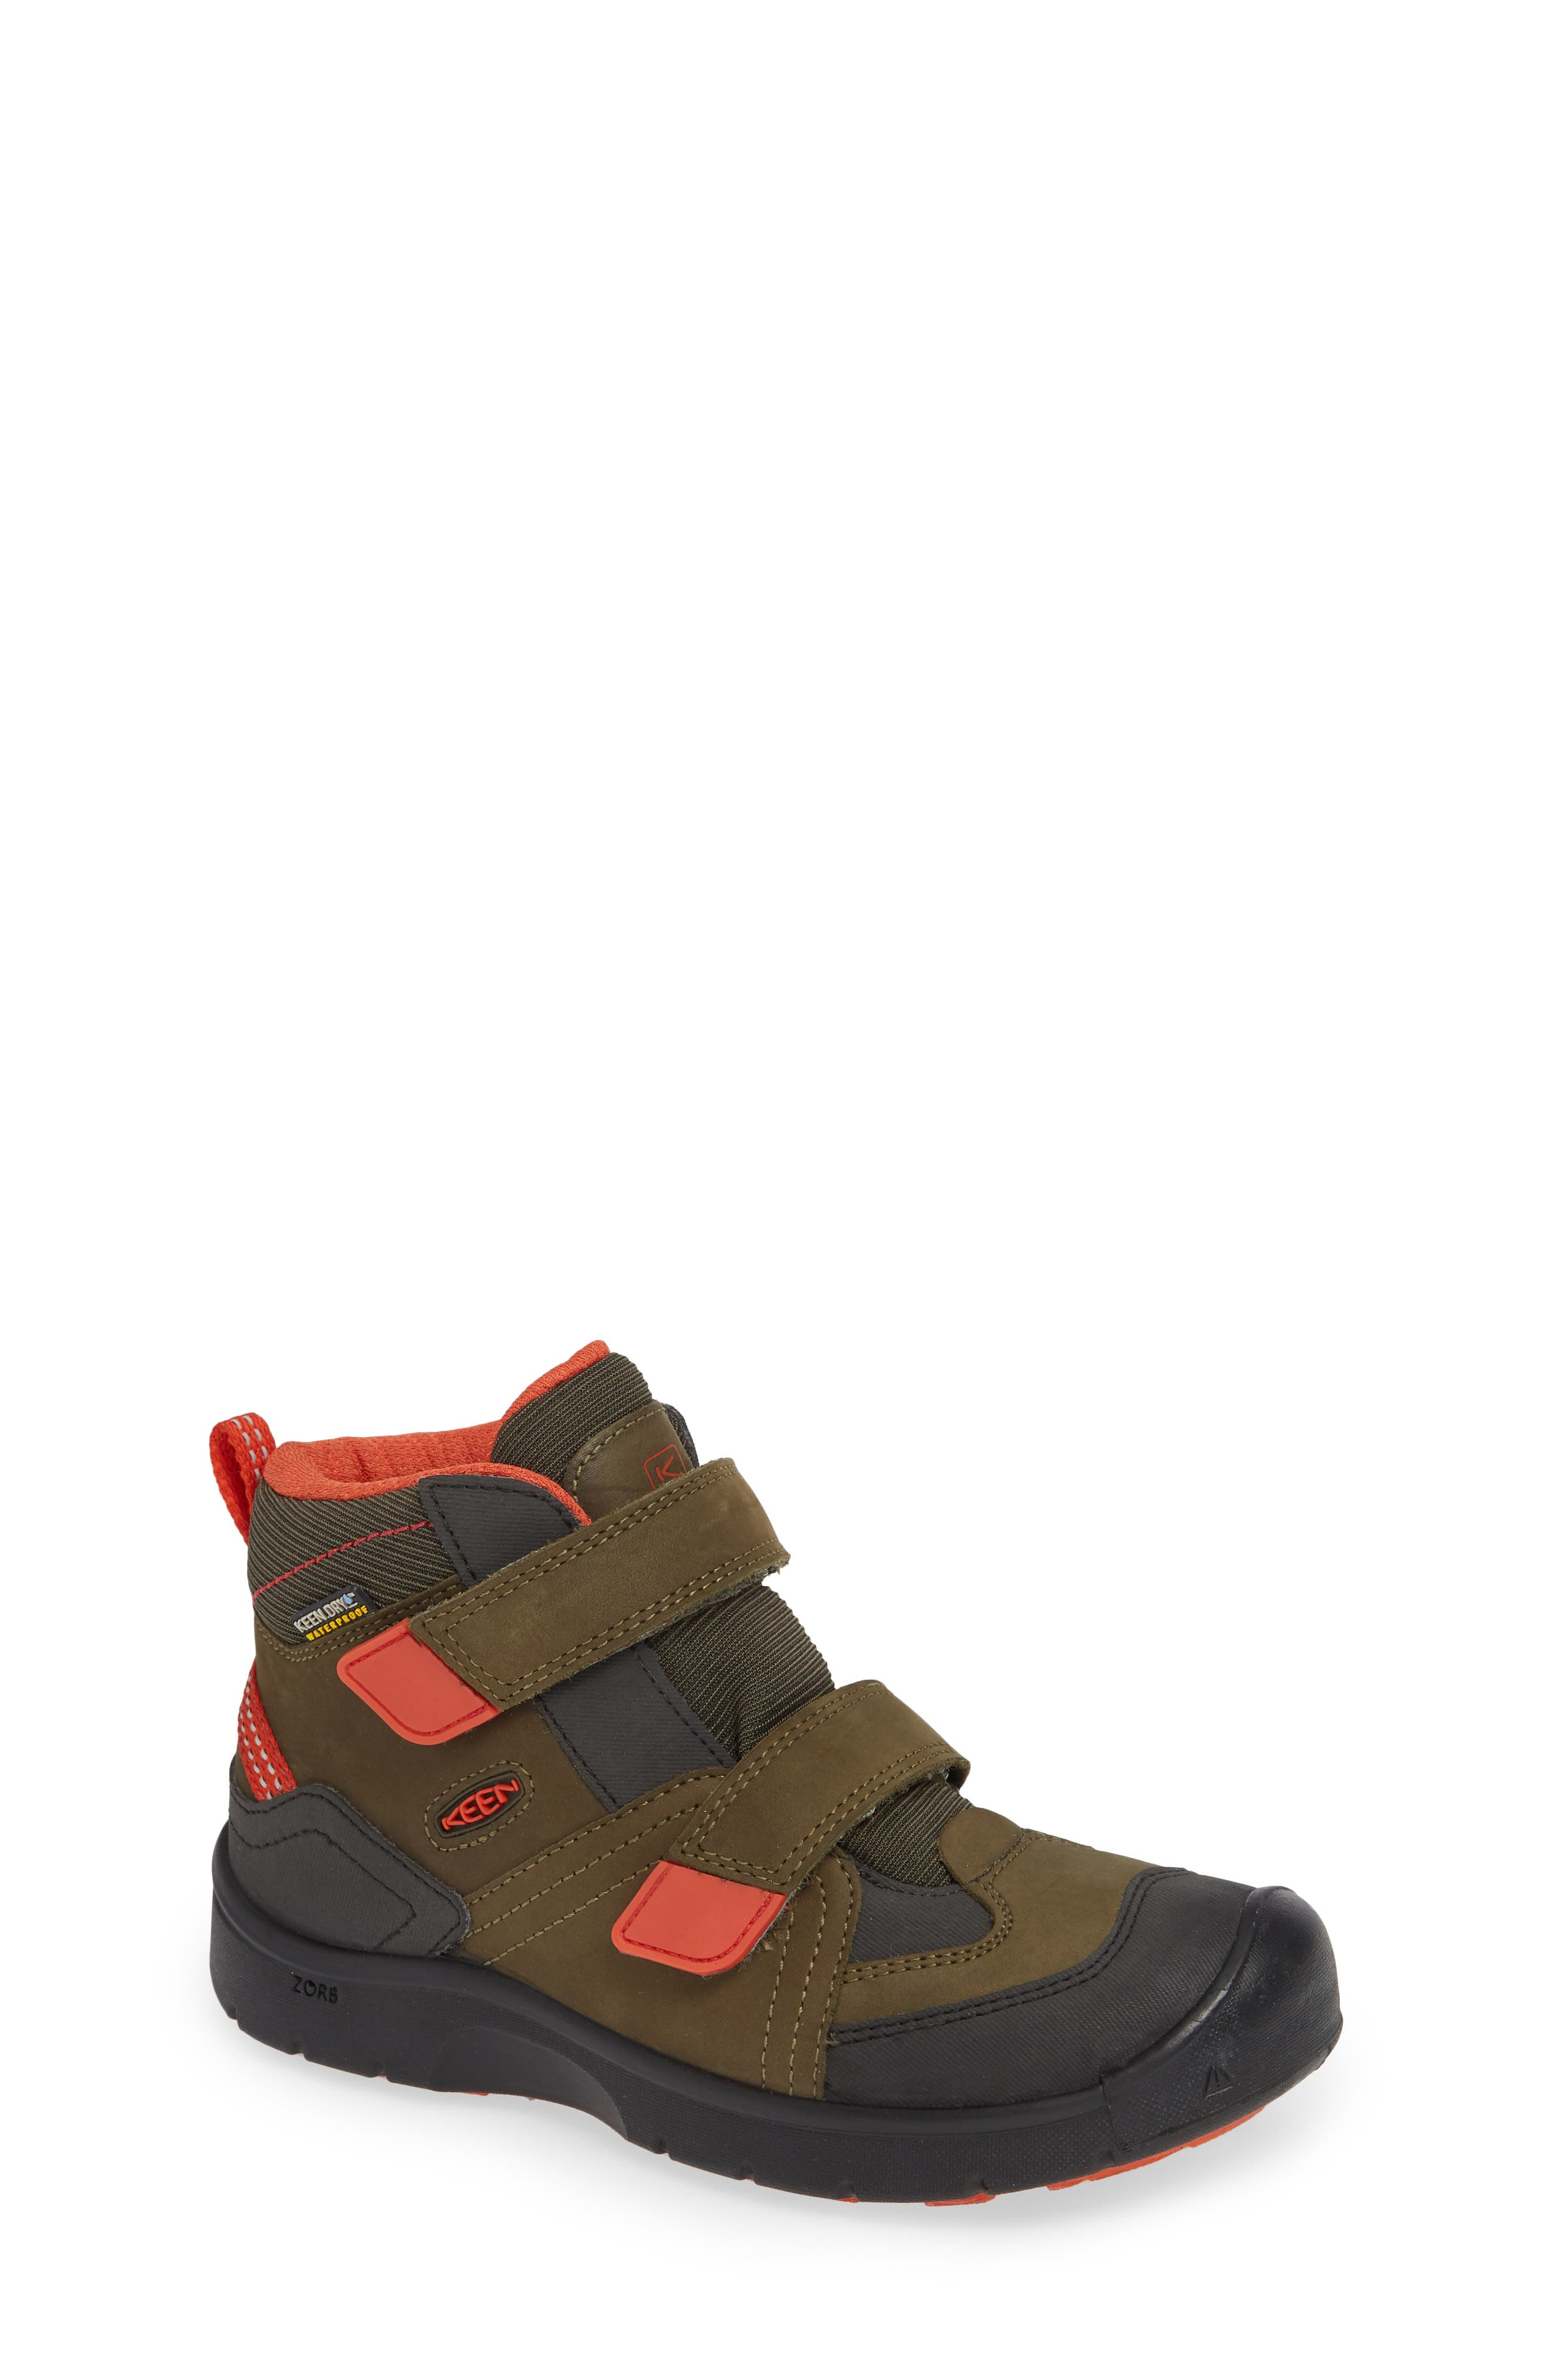 KEEN Hikeport Strap Waterproof Mid Boot, Main, color, MARTINI OLIVE/ PUMPKIN